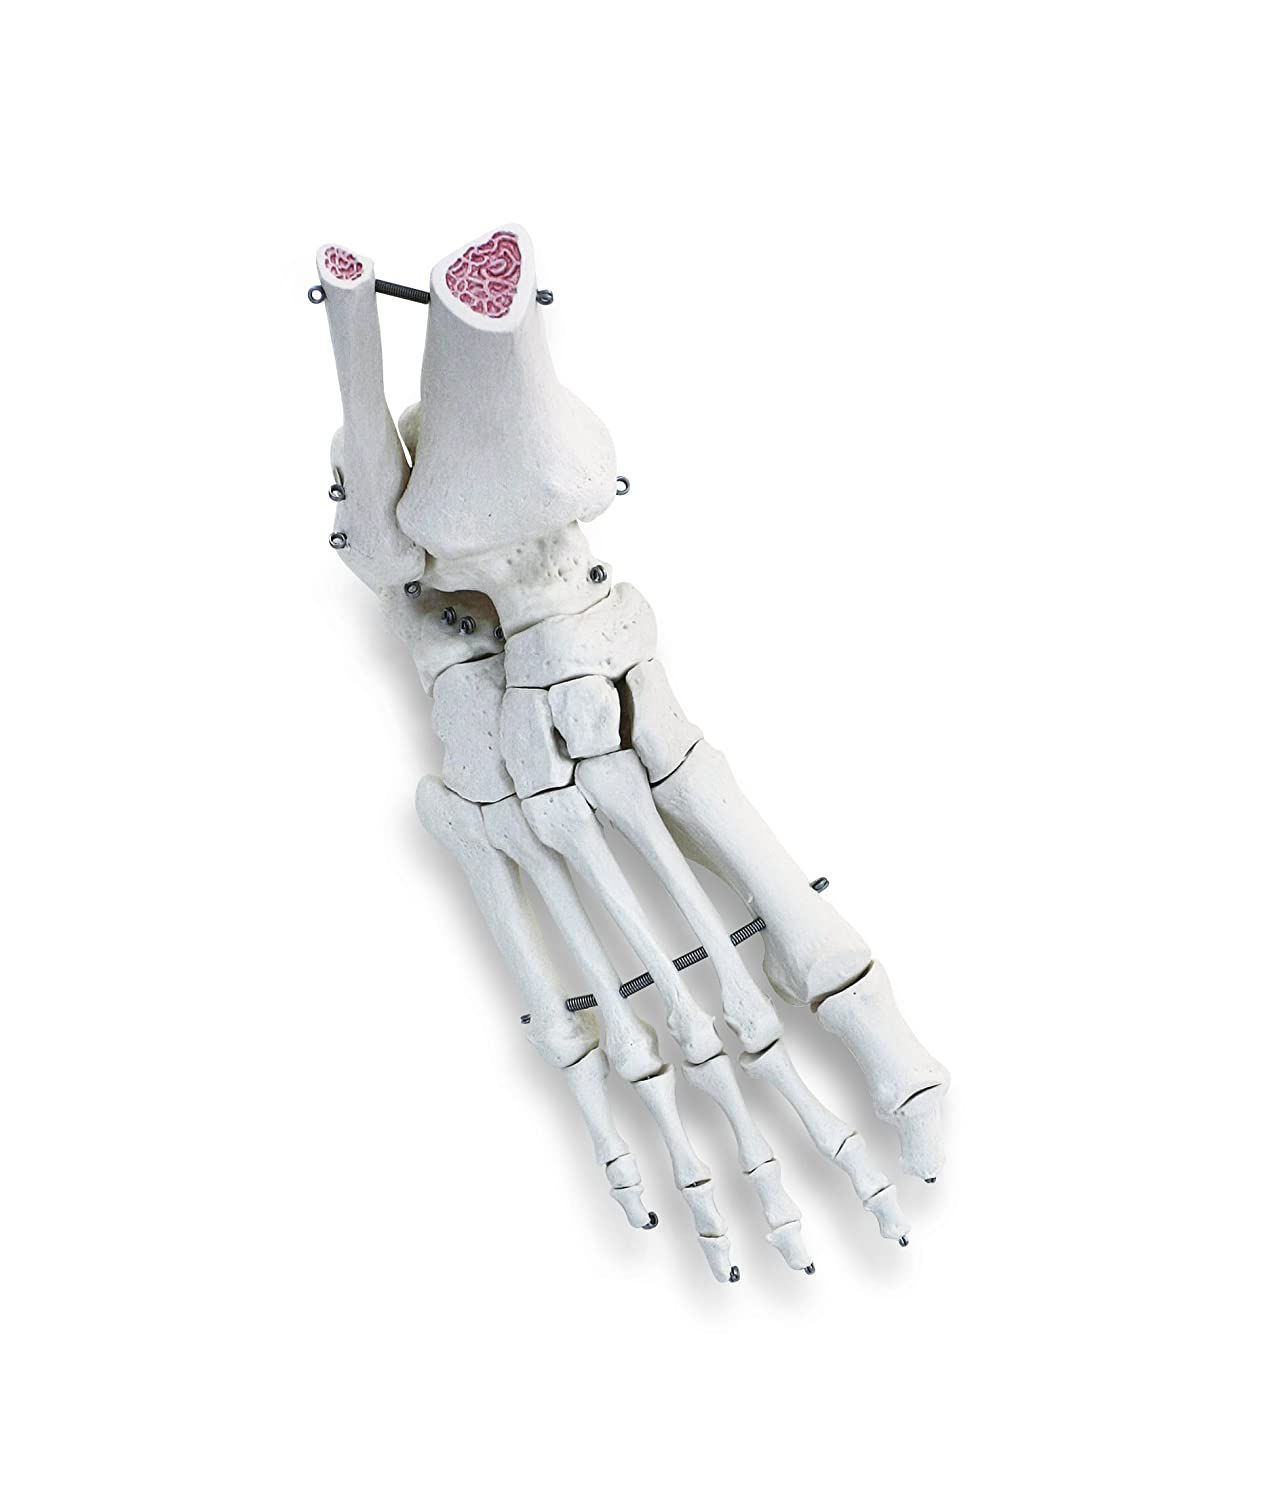 3b Scientific A31r Human Right Foot And Ankle Skeleton Model Amazon